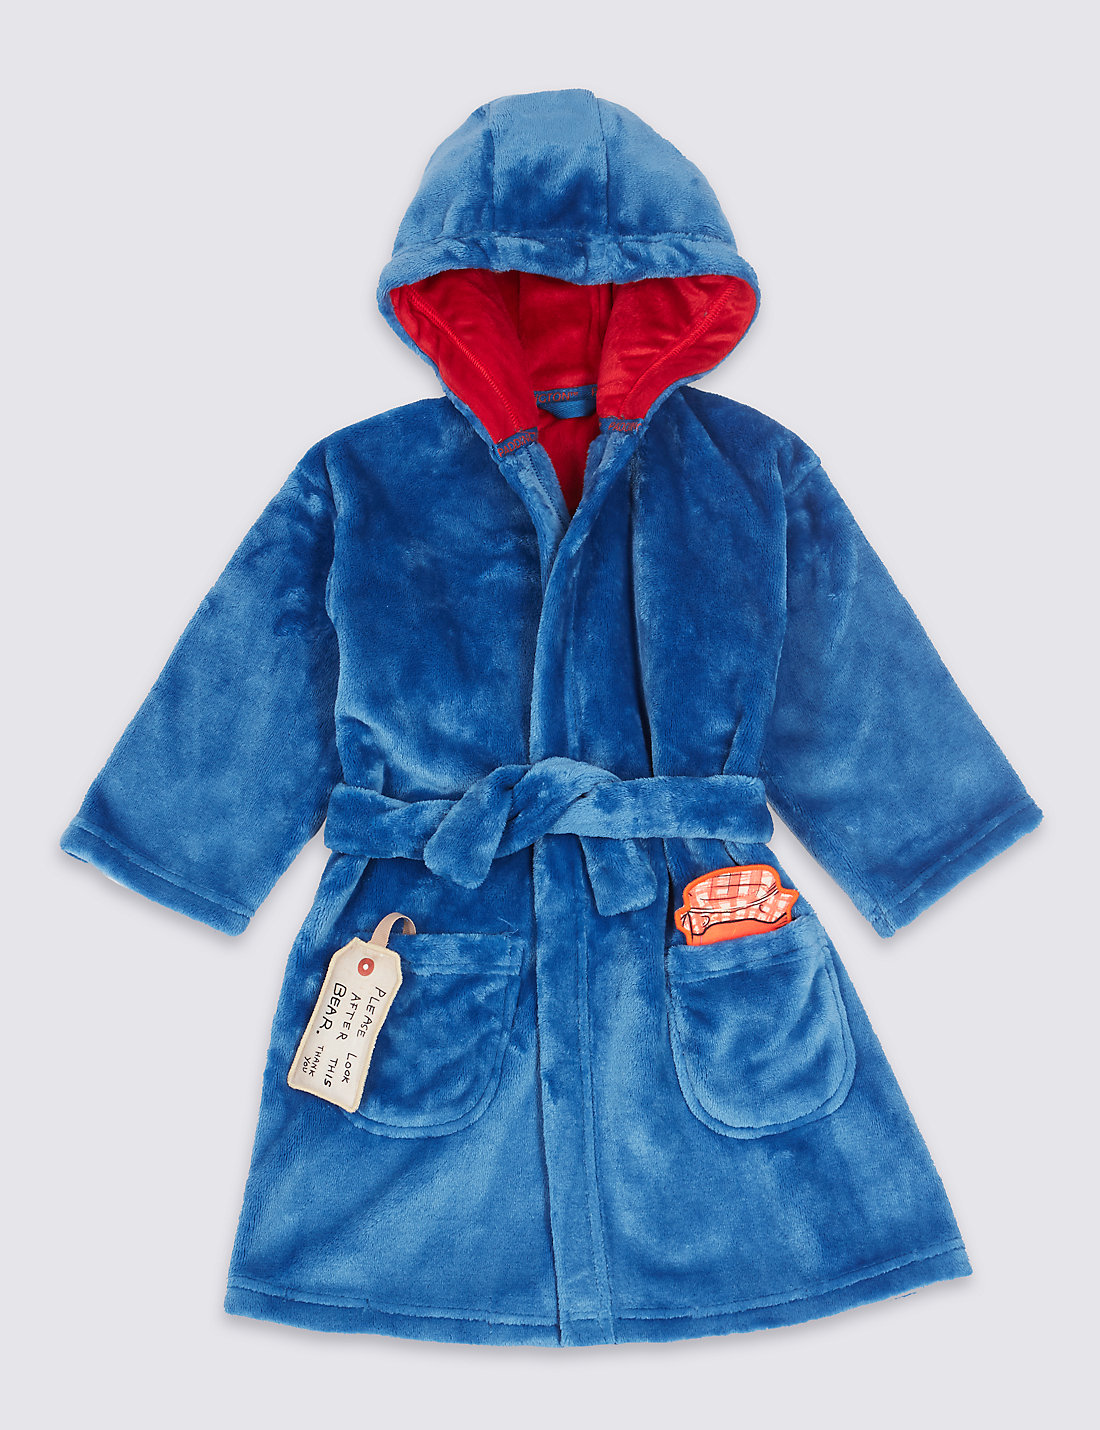 Baby Dressing Gown Next - Baby Care